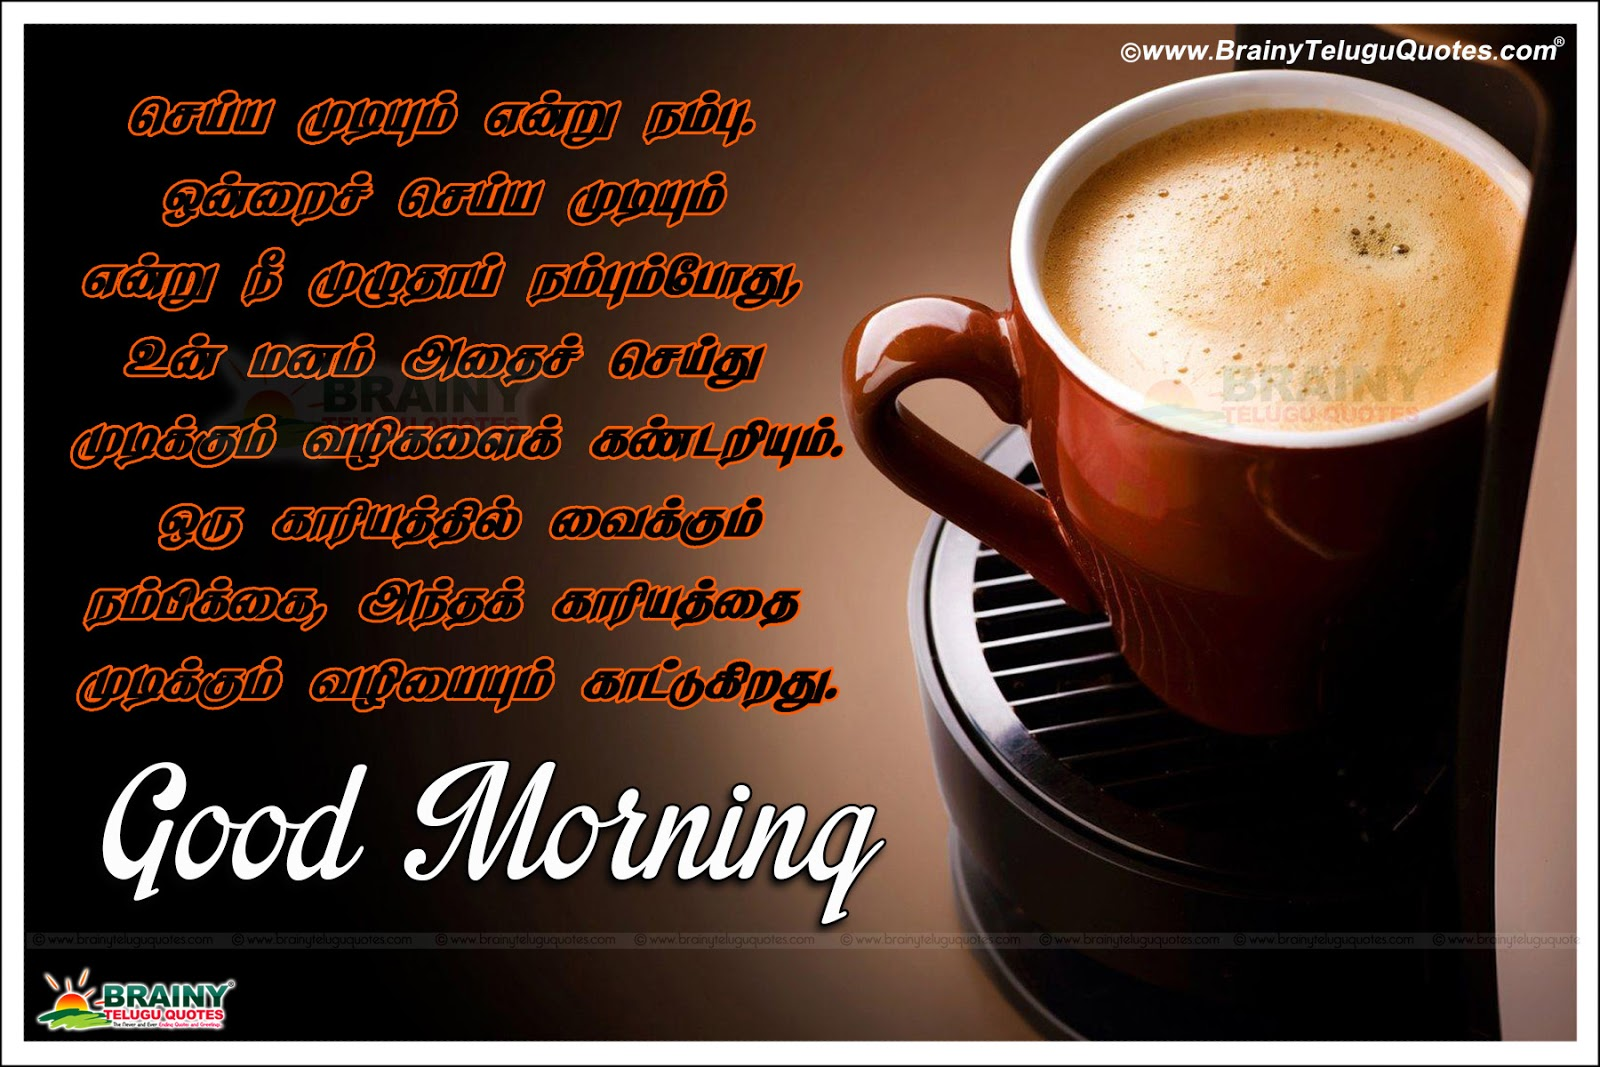 Tamil Good Morning Kavithaigal Greetings with Goodness